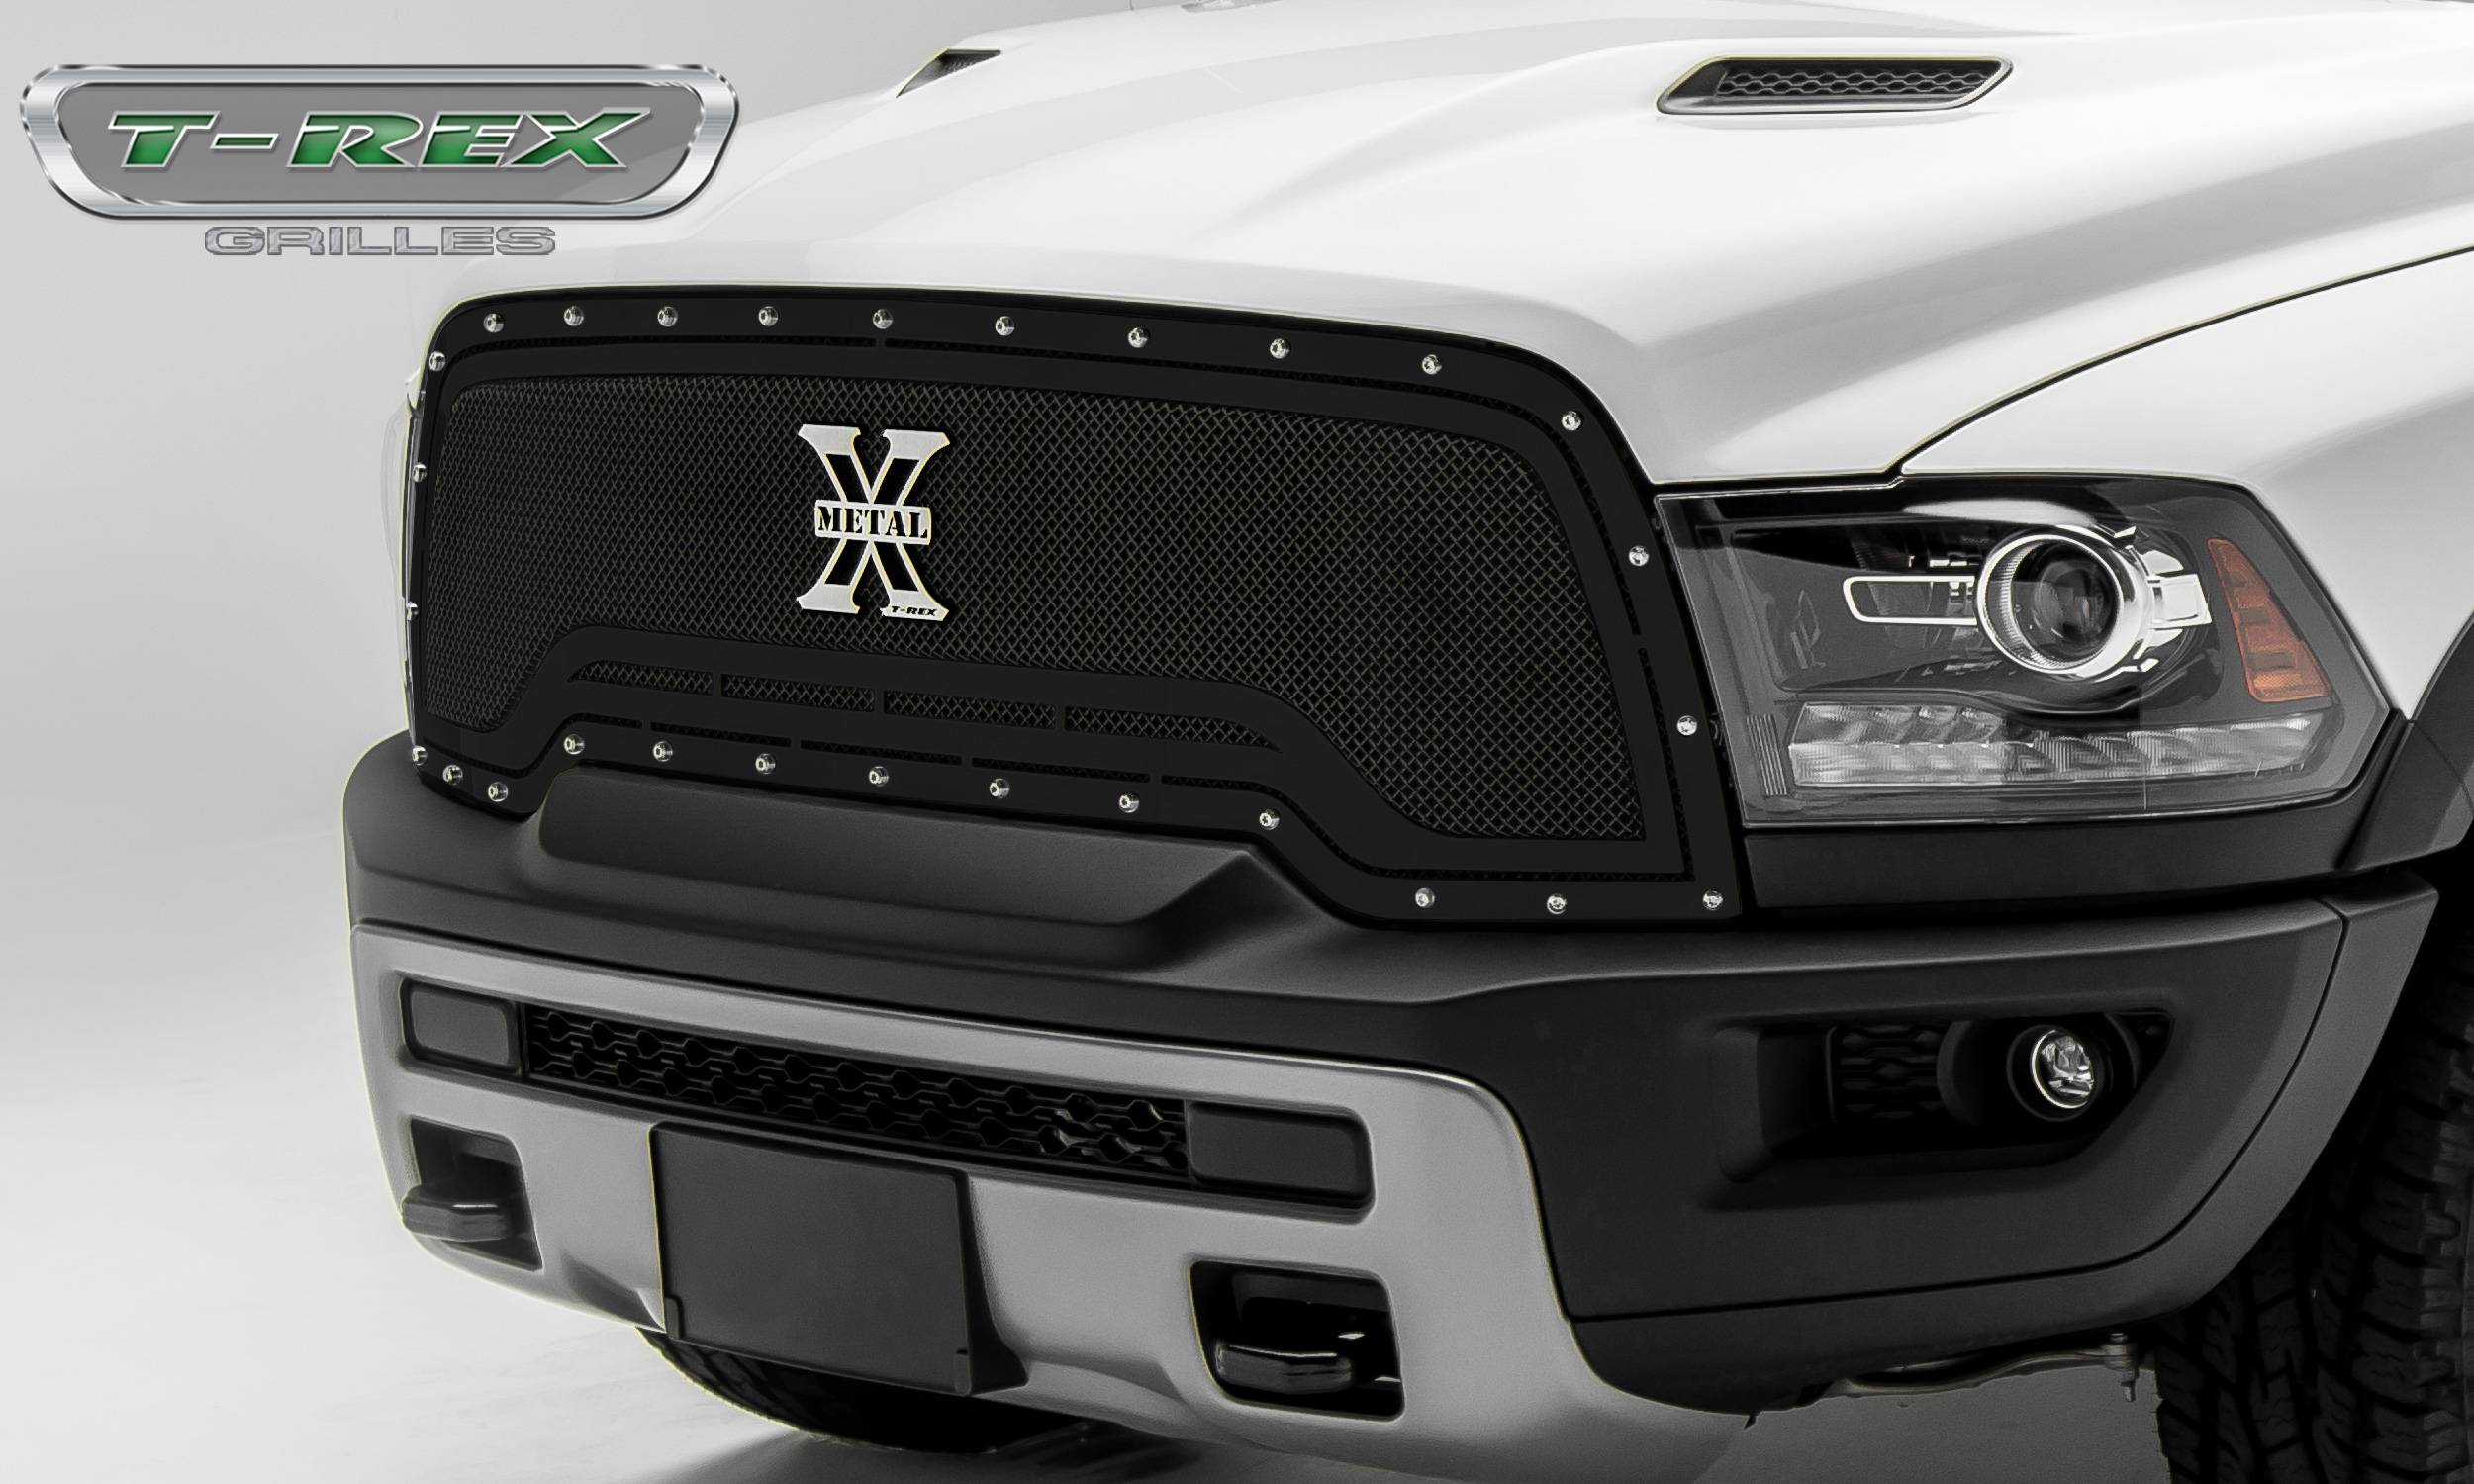 T-REX Grilles - T-REX Ram Rebel - X-METAL Series - Main Grille Replacement - Steel Frame w/ Wire Mesh - Studded with Black Powdercoat Finish - Part #6714641